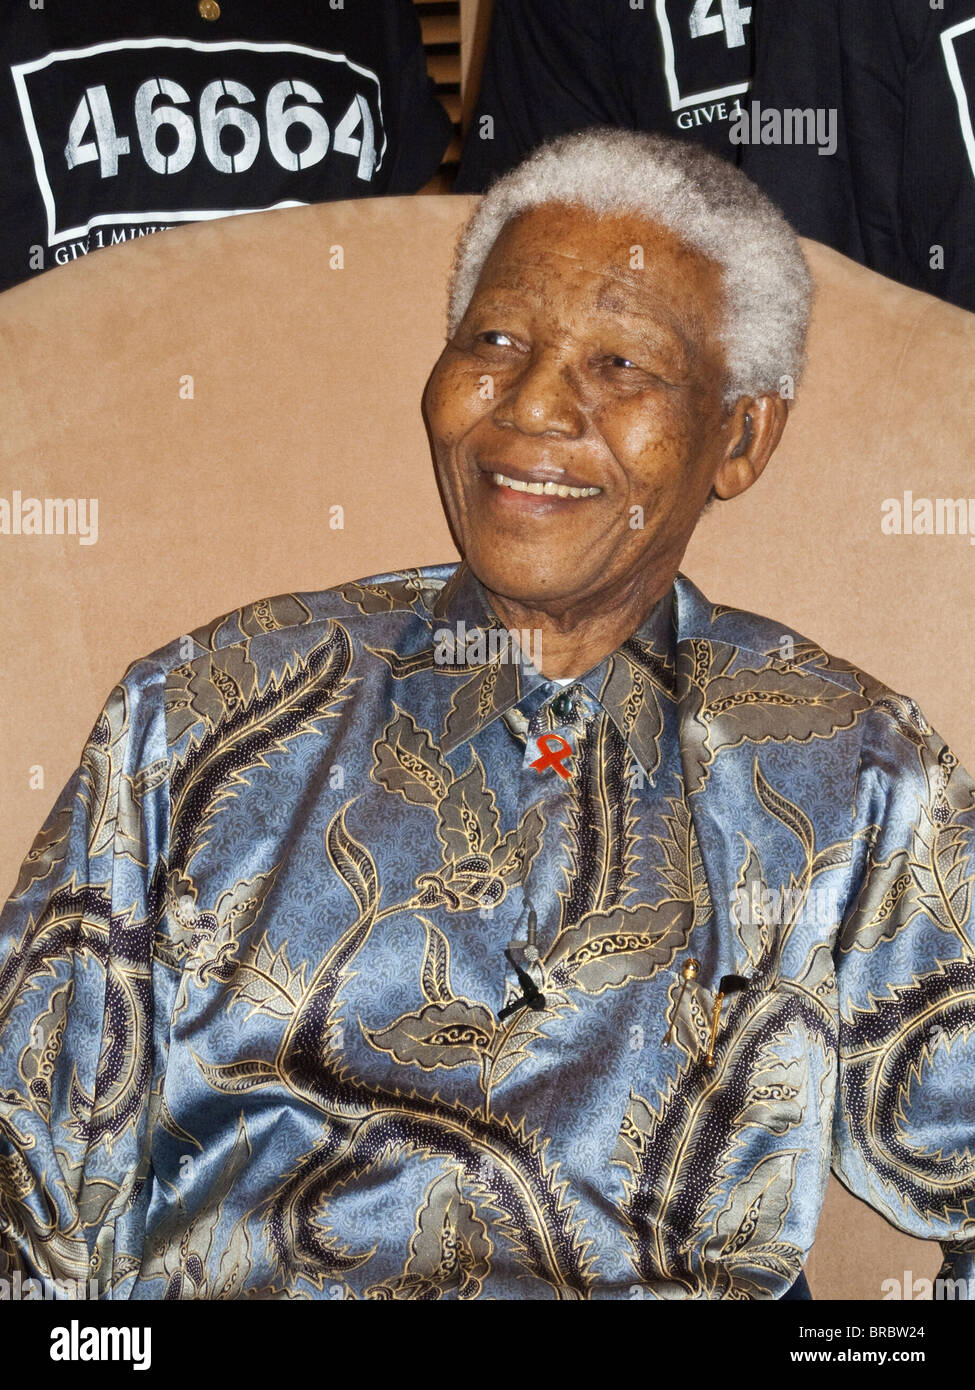 Nelson Mandela, president of South Africa between 1994 and 1999 at an event for HIV/AIDS campaign, Johannesburg, - Stock Image